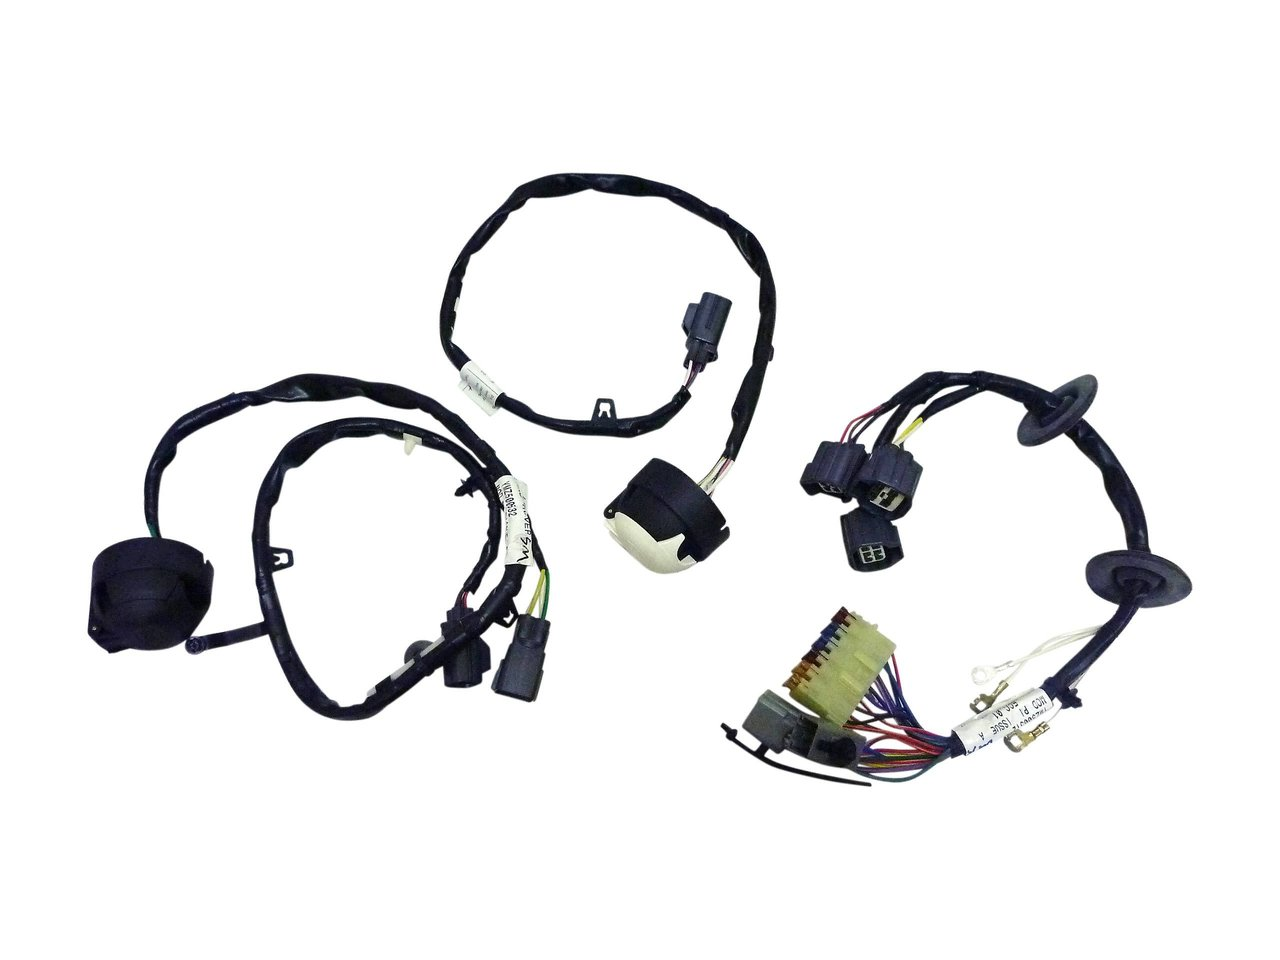 Trailer Wiring Harness Two Plug Land Rover Discovery 3 Genuine 4 Diagram Aftermarket Ywj500201